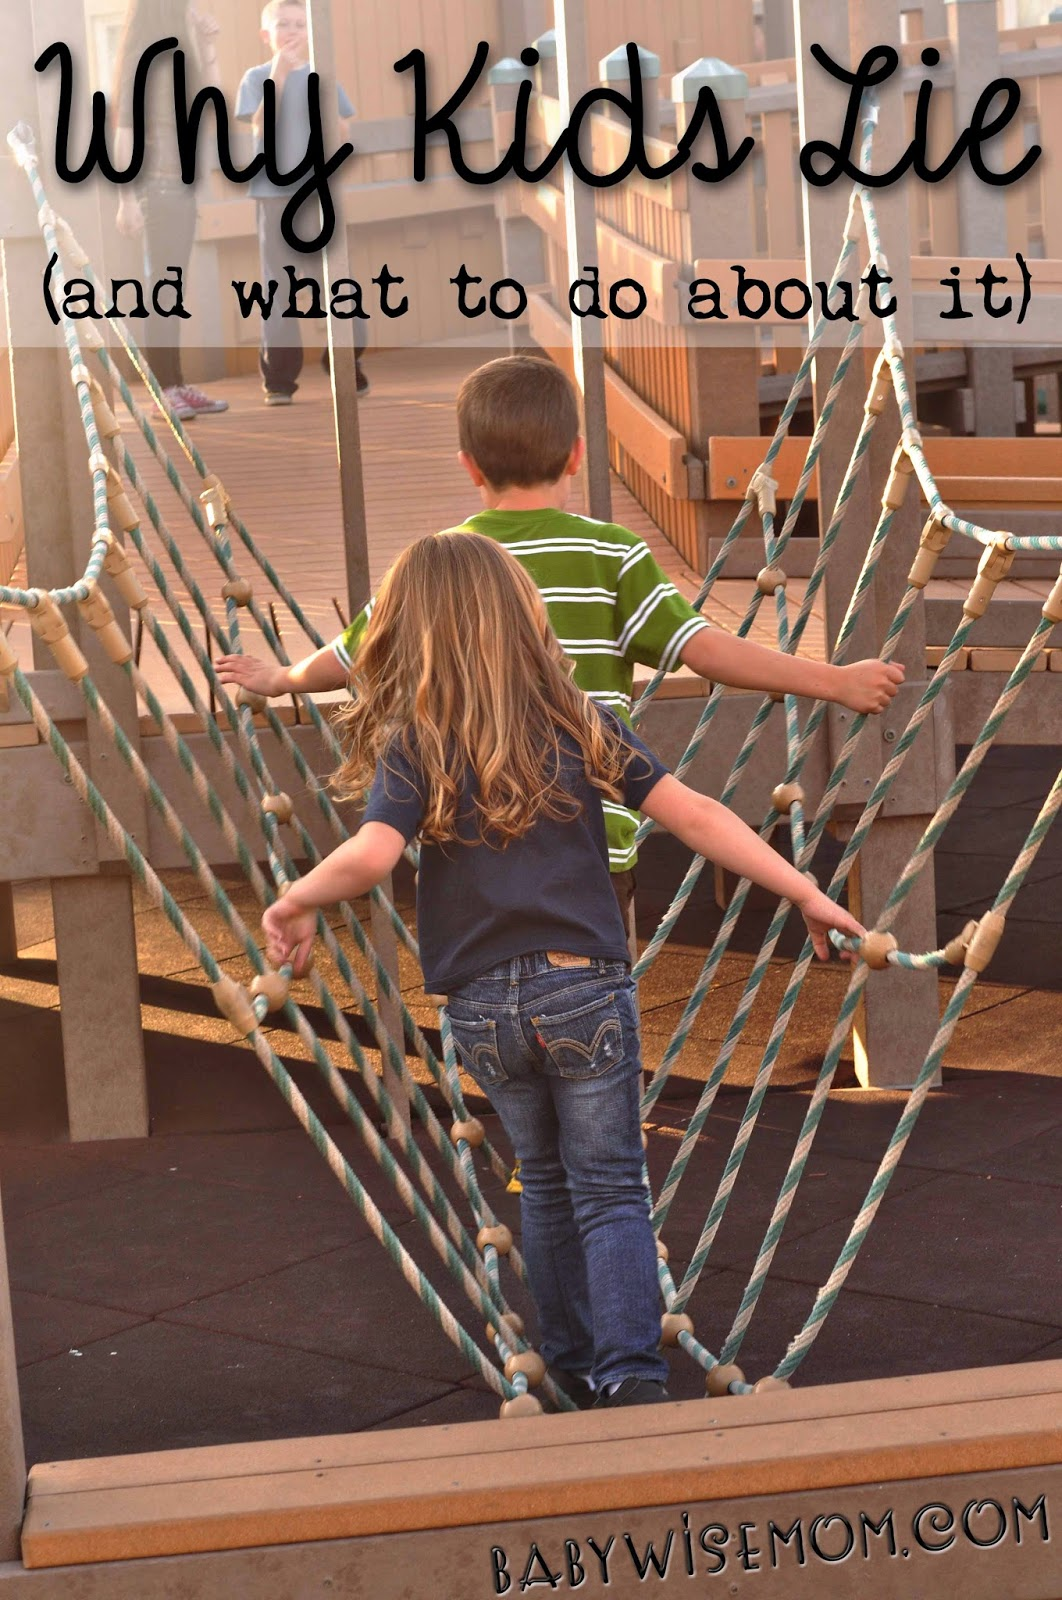 When kids lie, and what to do about it (click to read)